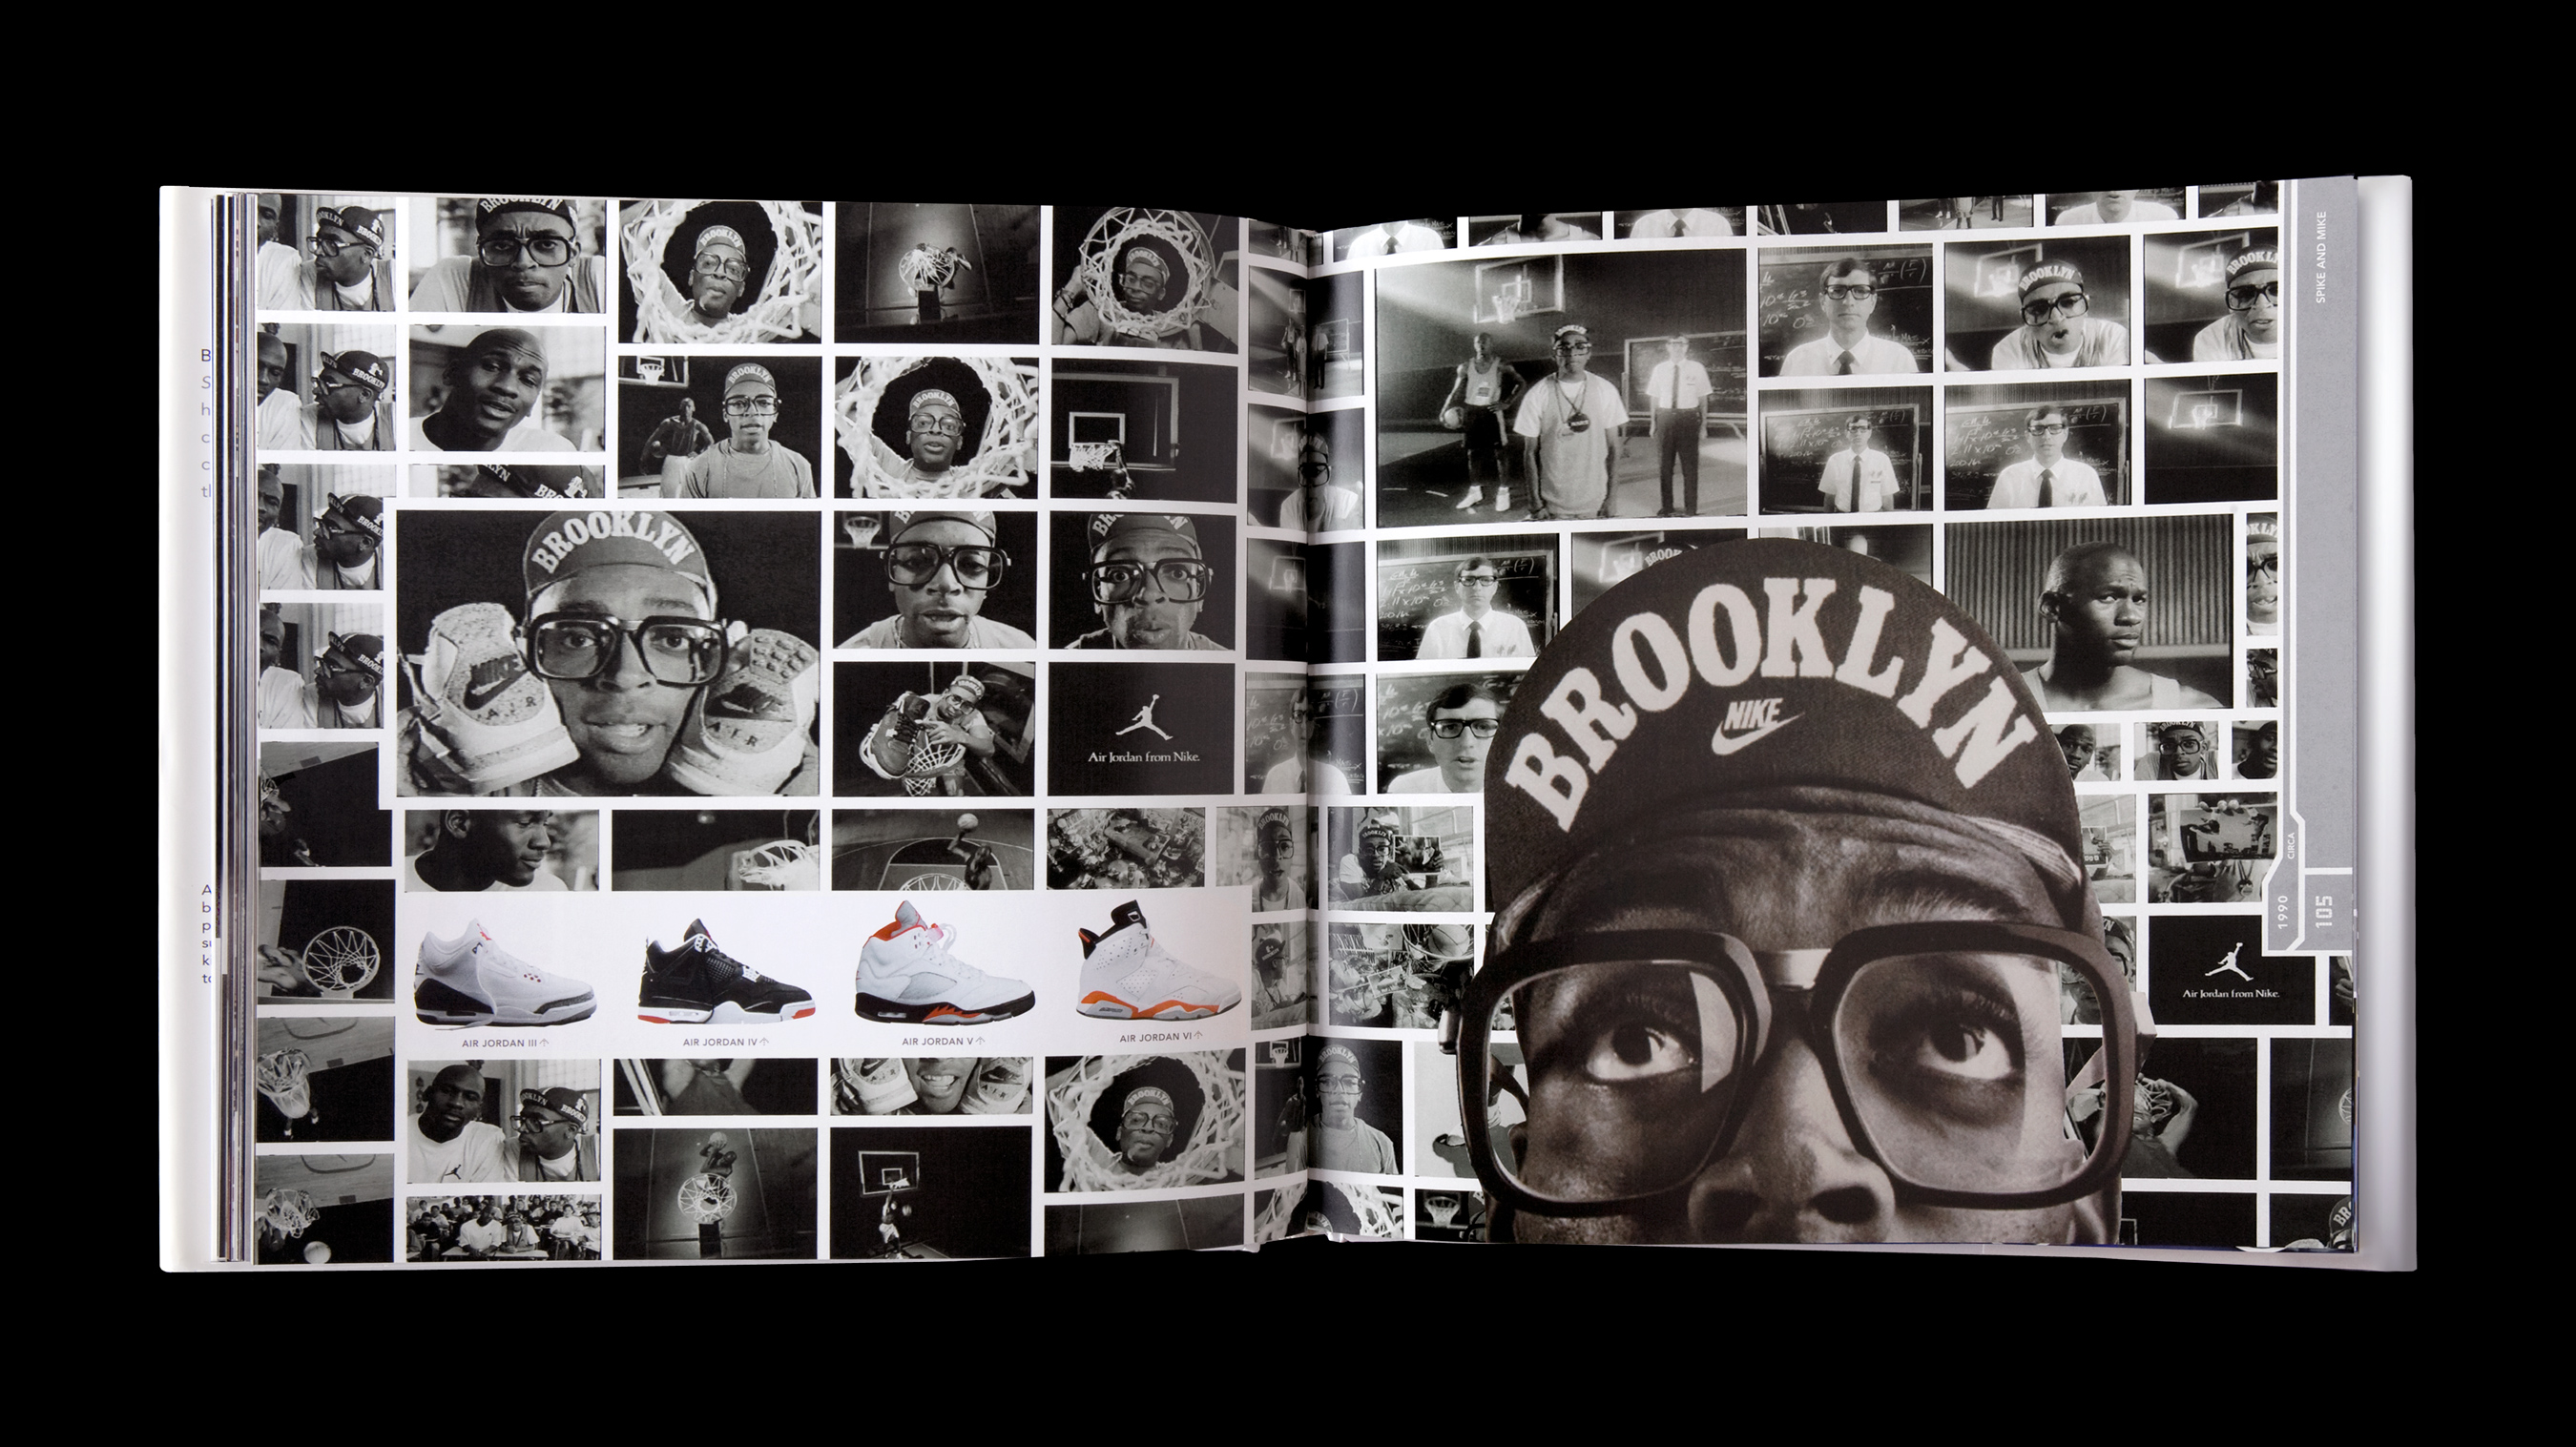 Nike sole provider spike lee profile image and shoe spread